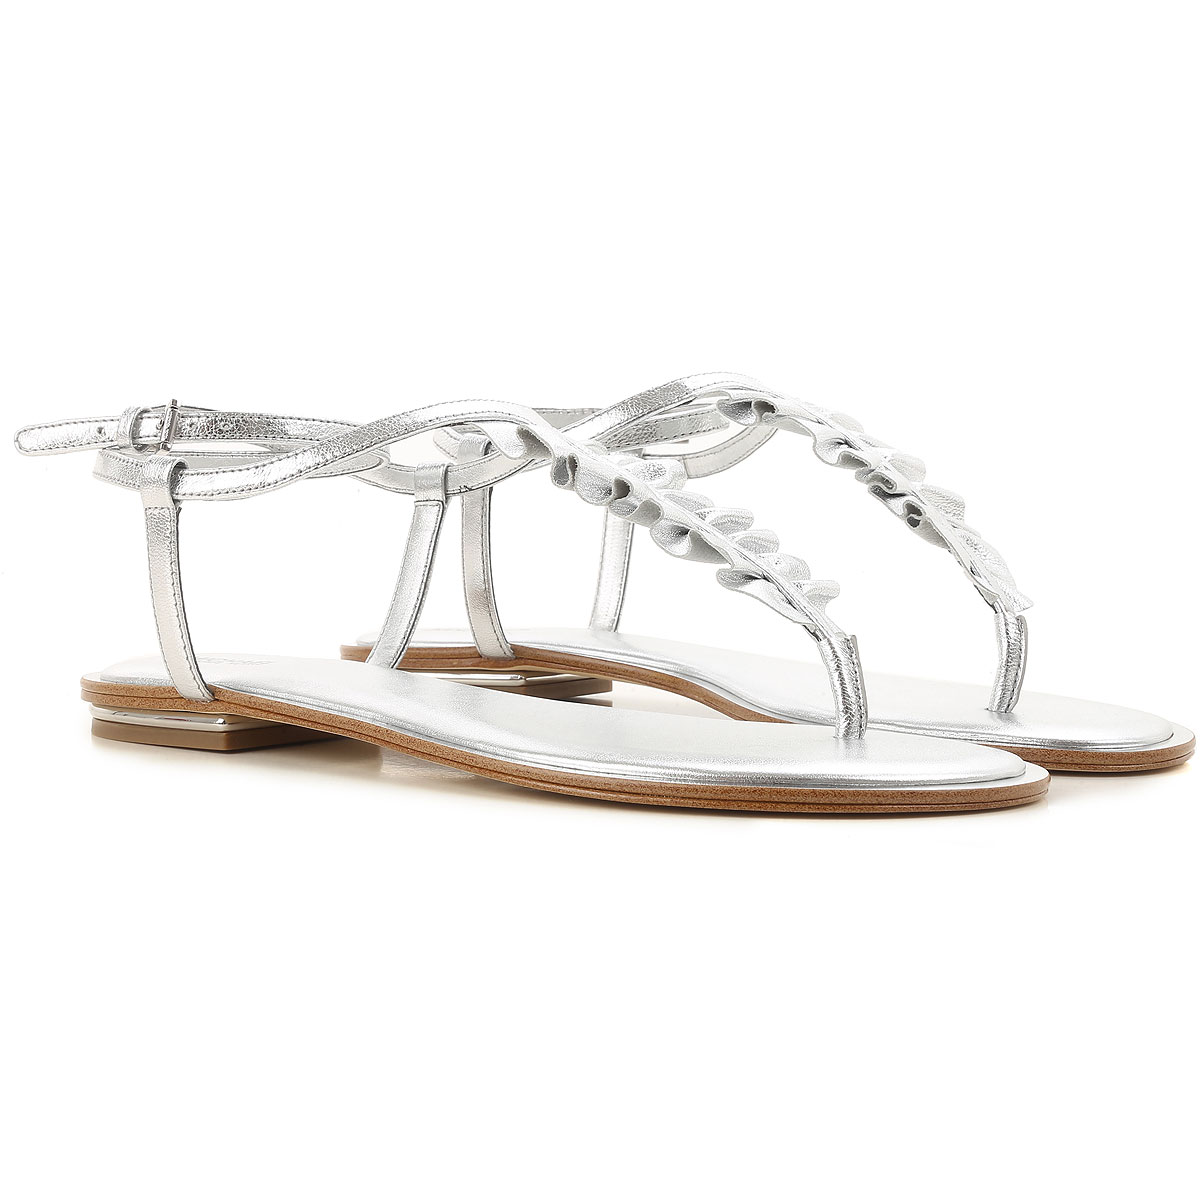 Michael Kors Sandals for Women On Sale in Outlet, Silver, Leather, 2019, 3.5 4